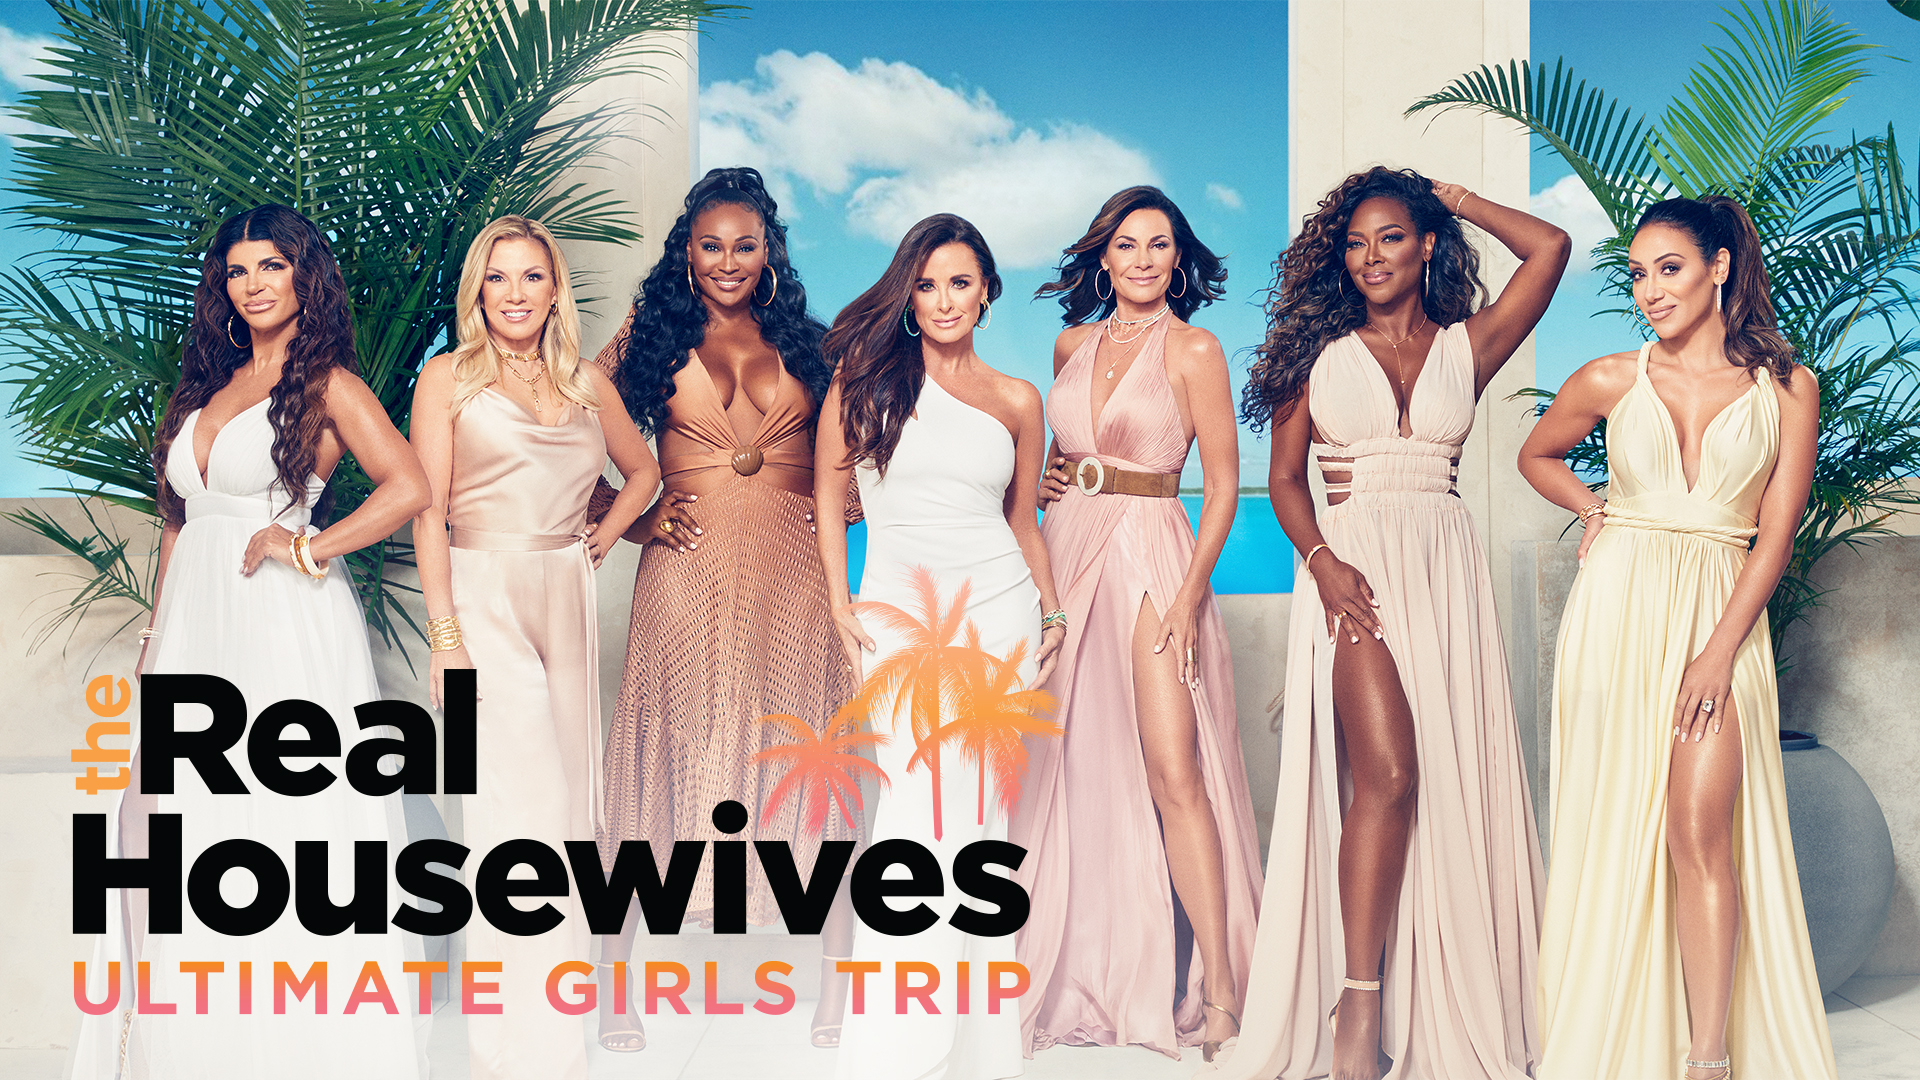 Real Housewives Ultimate Girls Trip - New Series November 21. Go to a video page.